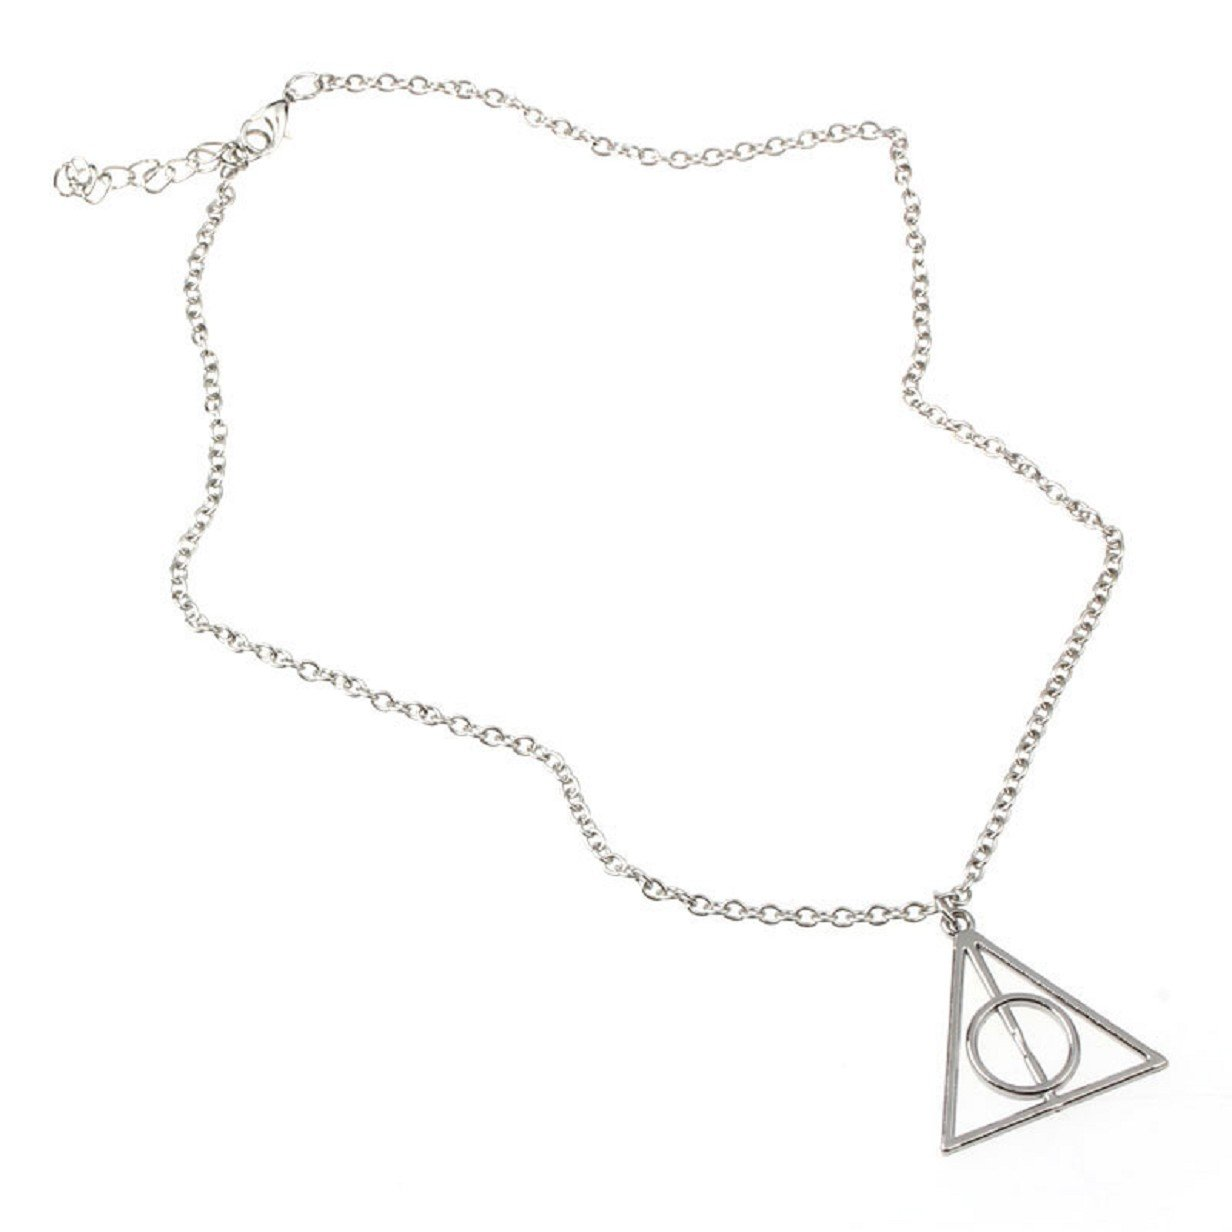 ABC® Fashion Retro Triangle Pendant Jewelry Necklace Lovely Gift часы песочные d16 см х h38 см